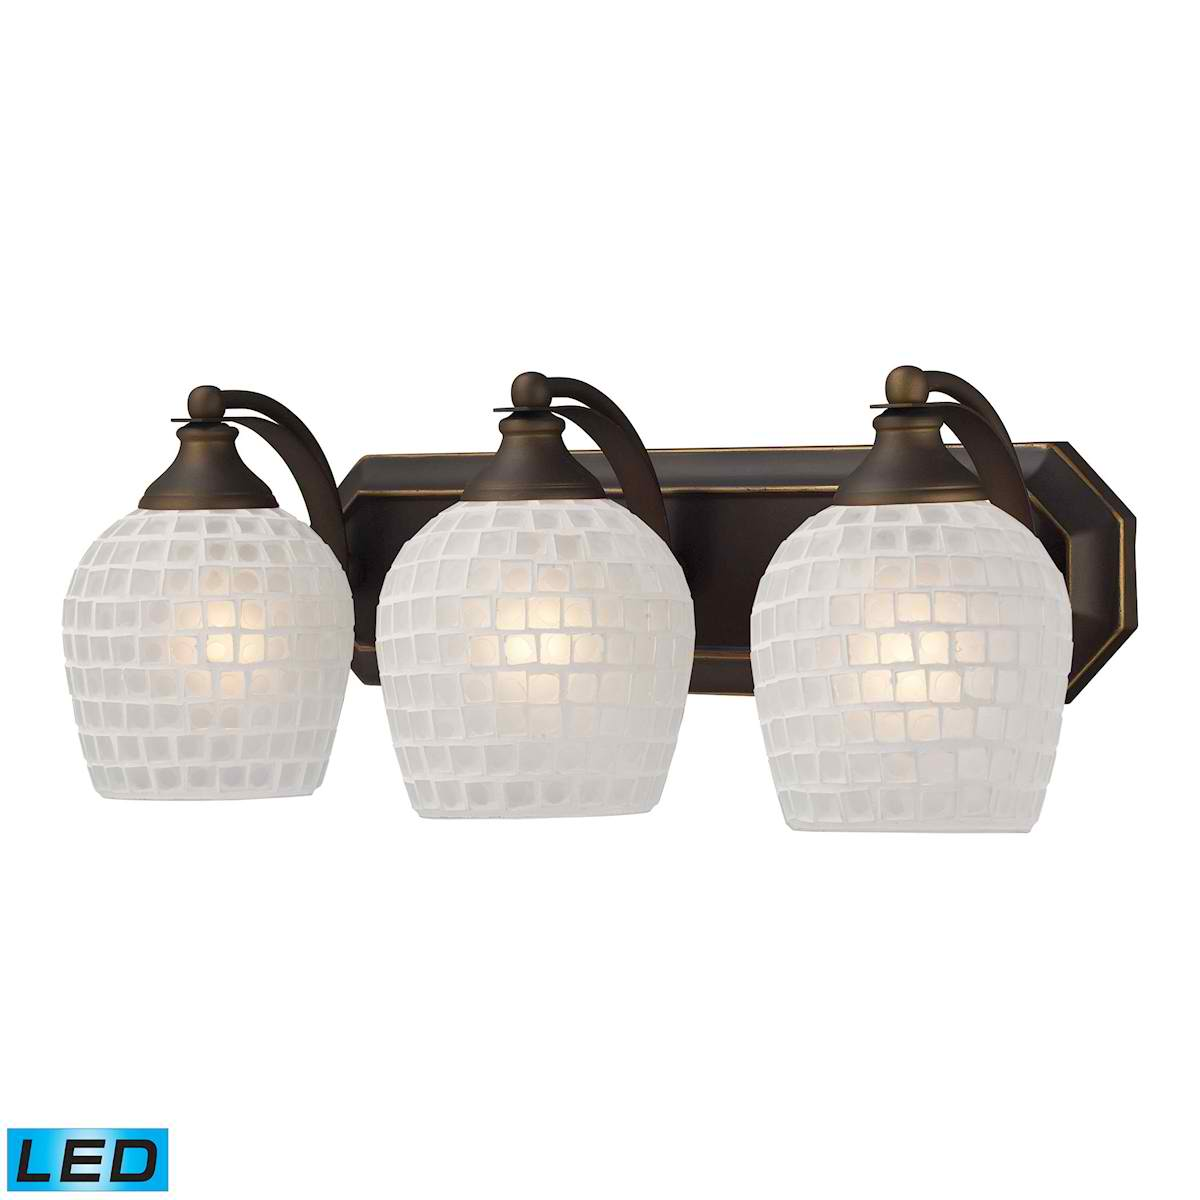 3 Light Vanity in Aged Bronze and White Mosaic Glass - LED, 800 Lumens (2400 Lumens Total) with Full Scale